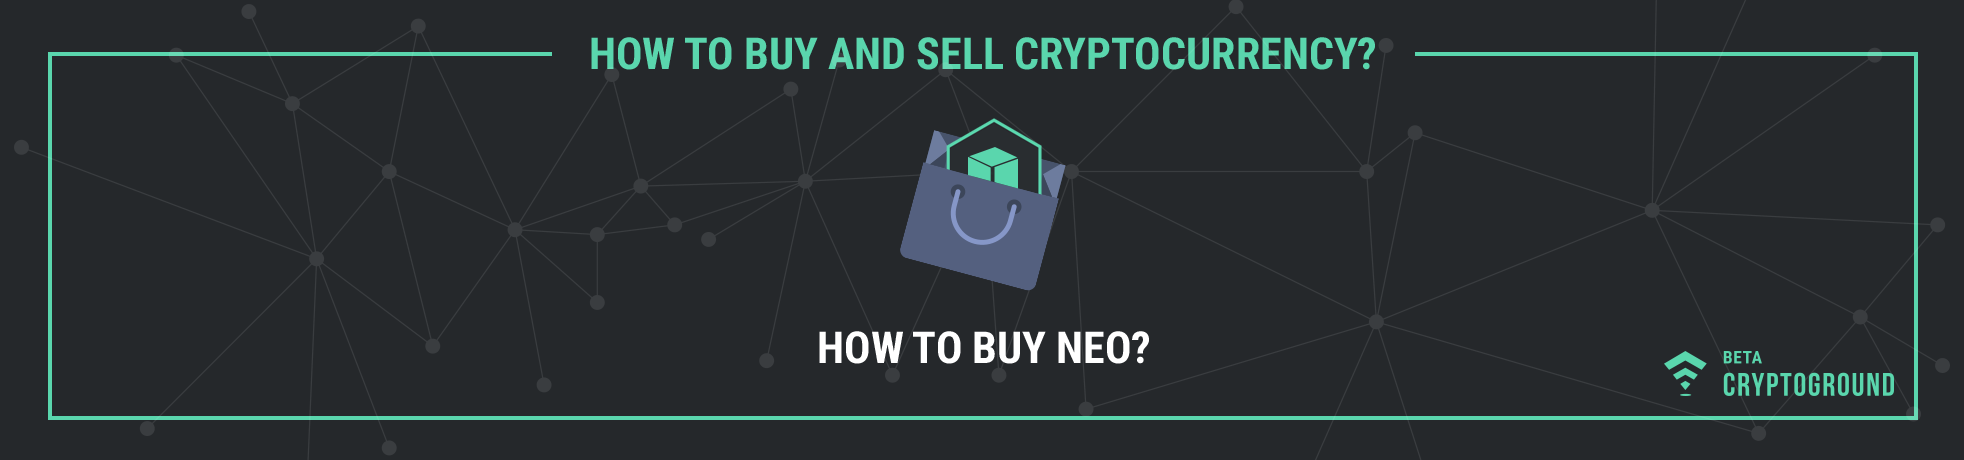 How to Buy Neo?